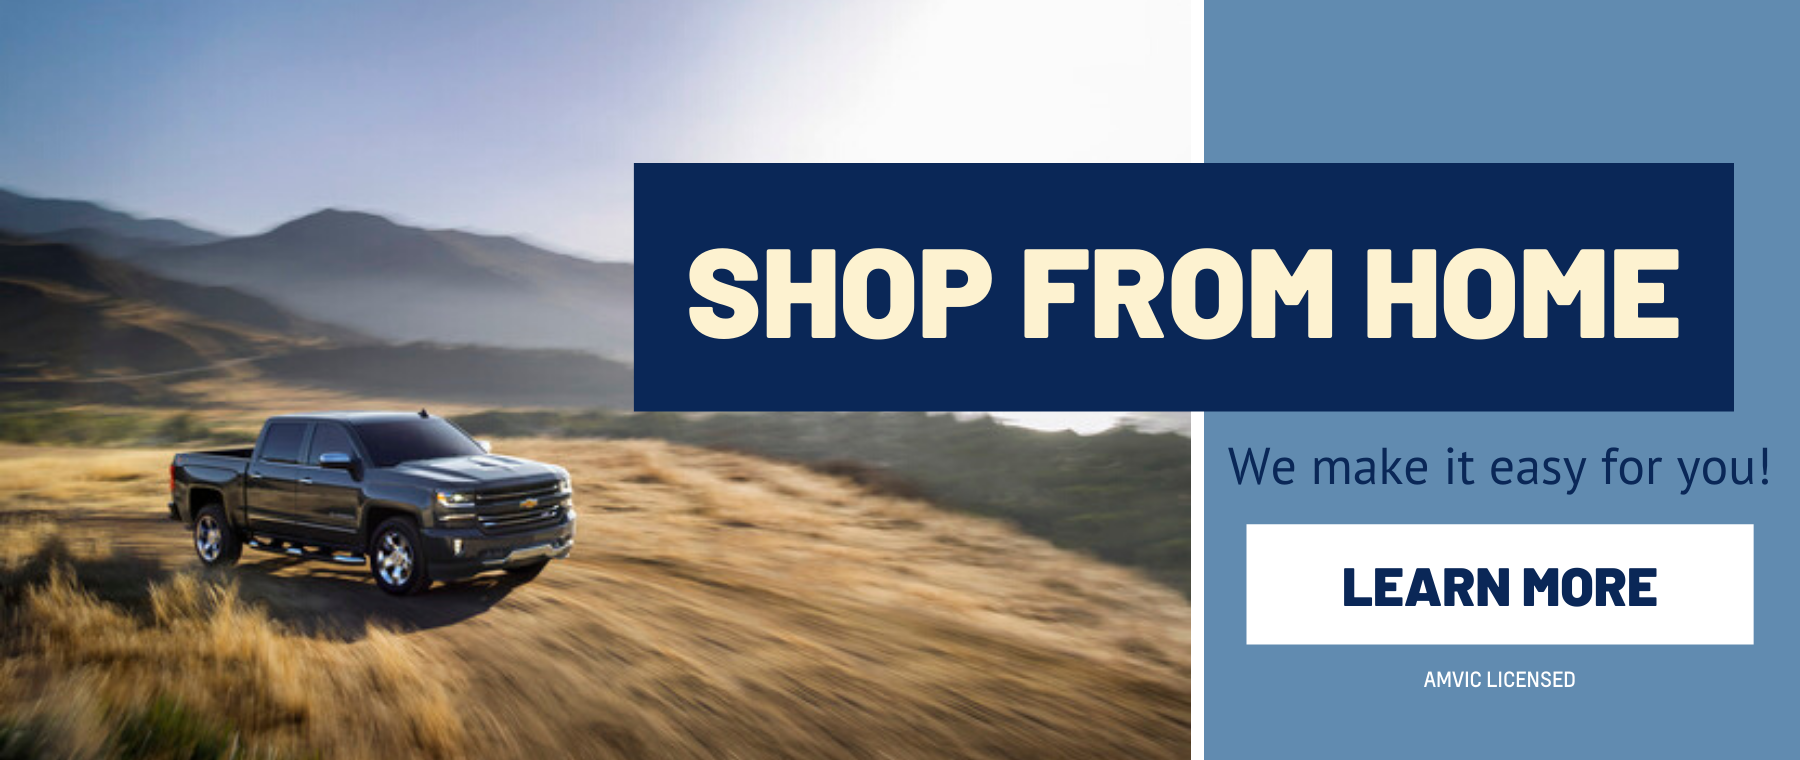 Shop From Home - Sherwood Park Chevrolet